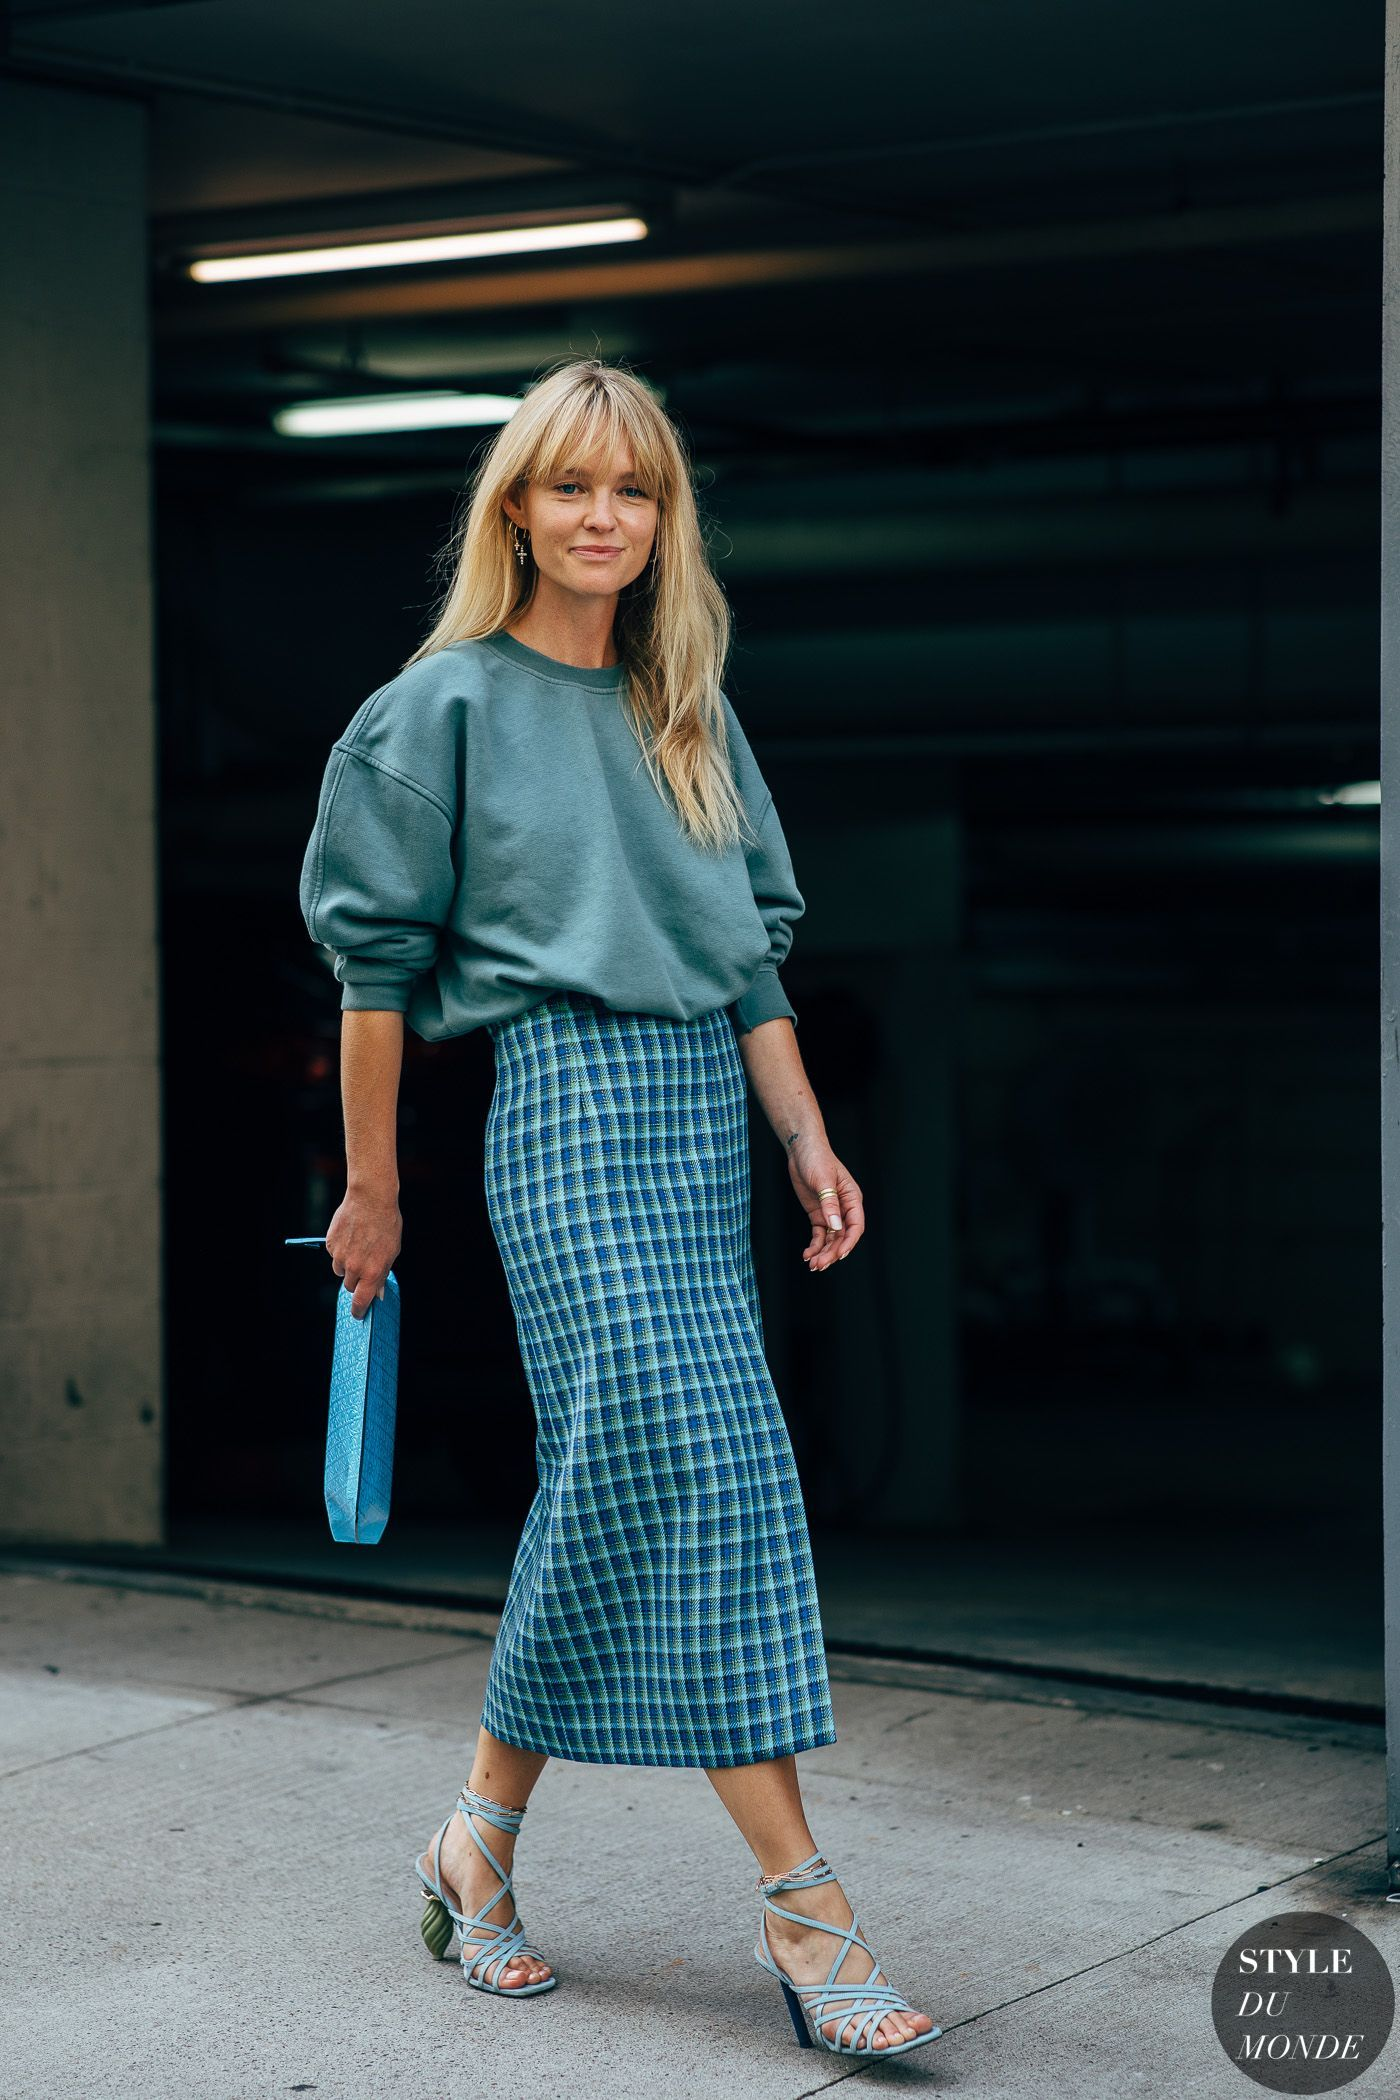 The 10 Photos Inspiring My Fall Wardrobe Right Now > The Effortless Chic